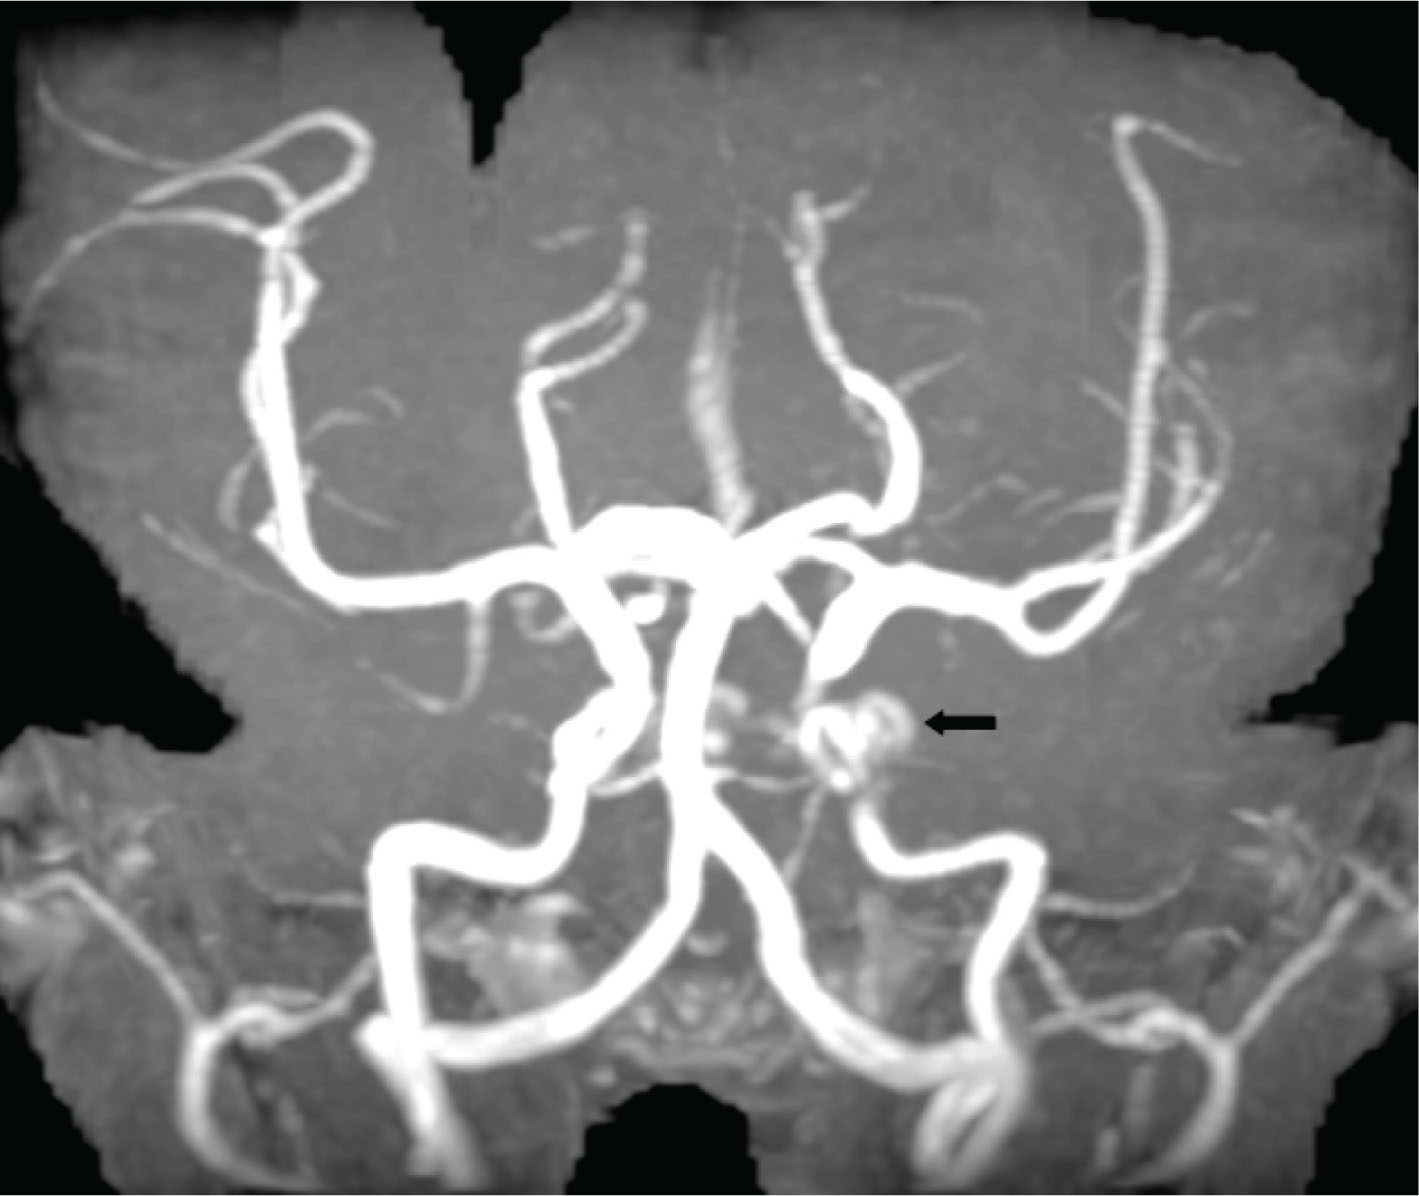 Magnetic resonance angiography scan of a lobulated aneurysm (arrow) involving the left cavernous internal carotid artery.